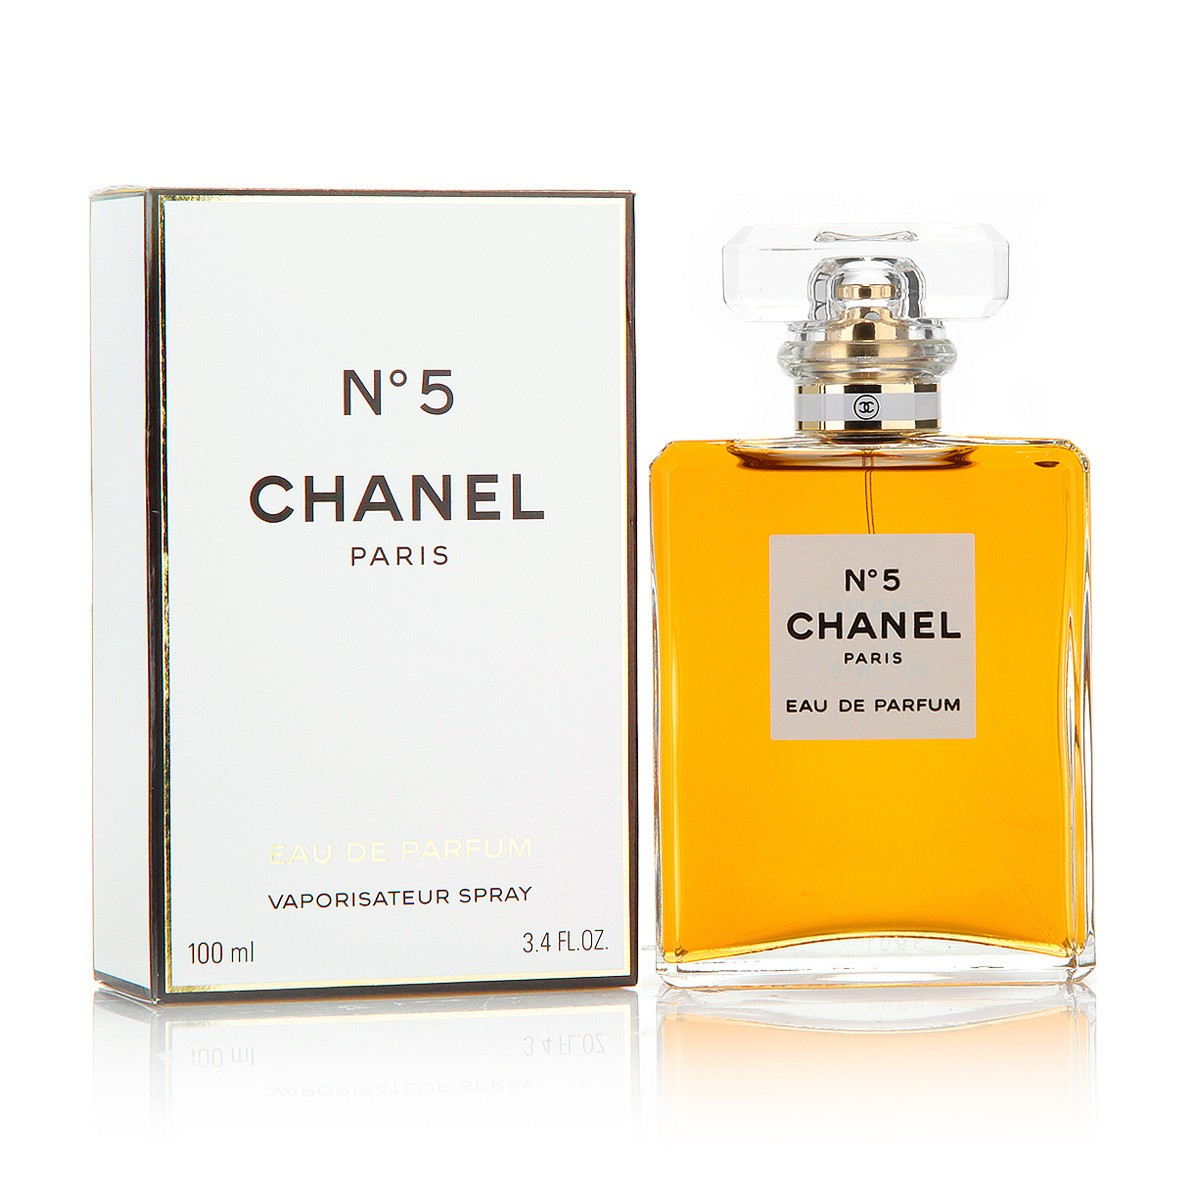 new chanel no 5 eau de parfum full size retail packaging shopping heaven dot net. Black Bedroom Furniture Sets. Home Design Ideas